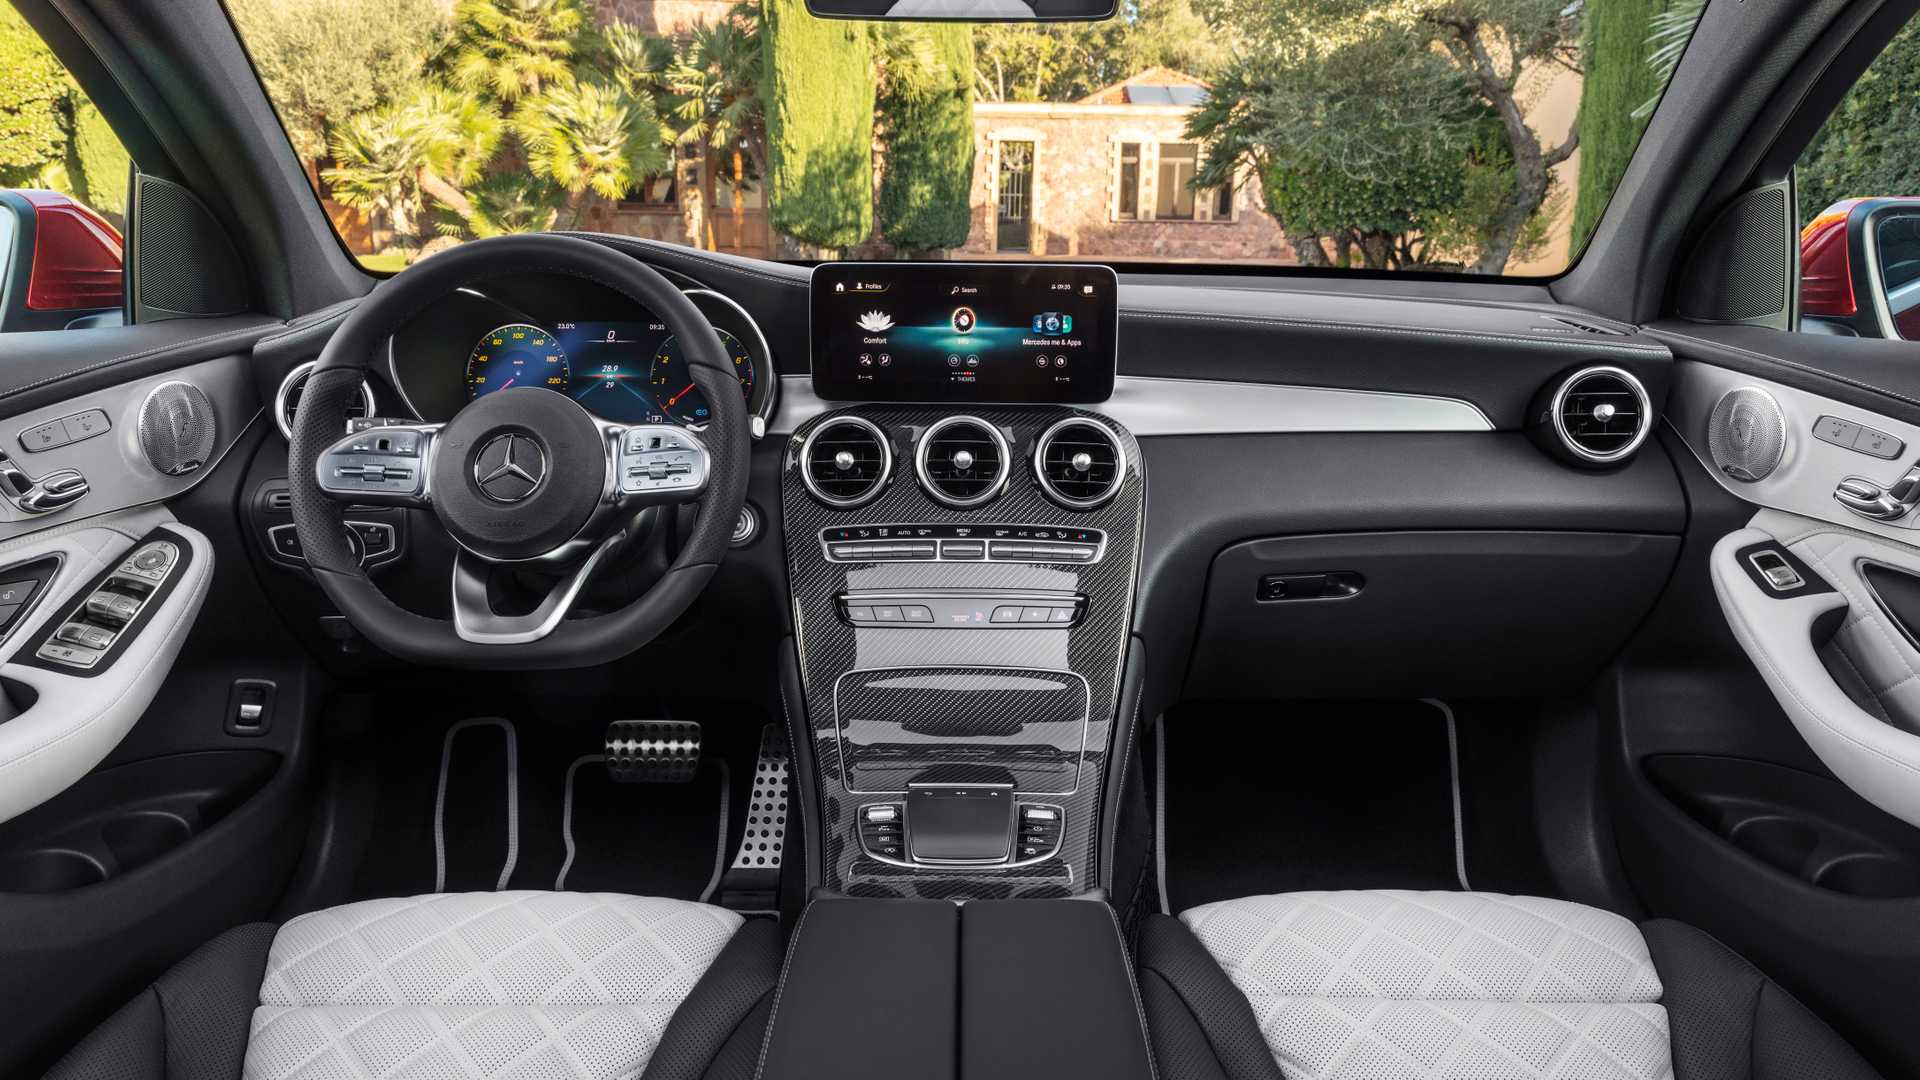 Mercedes Glc Coupe 2019 Interior 04